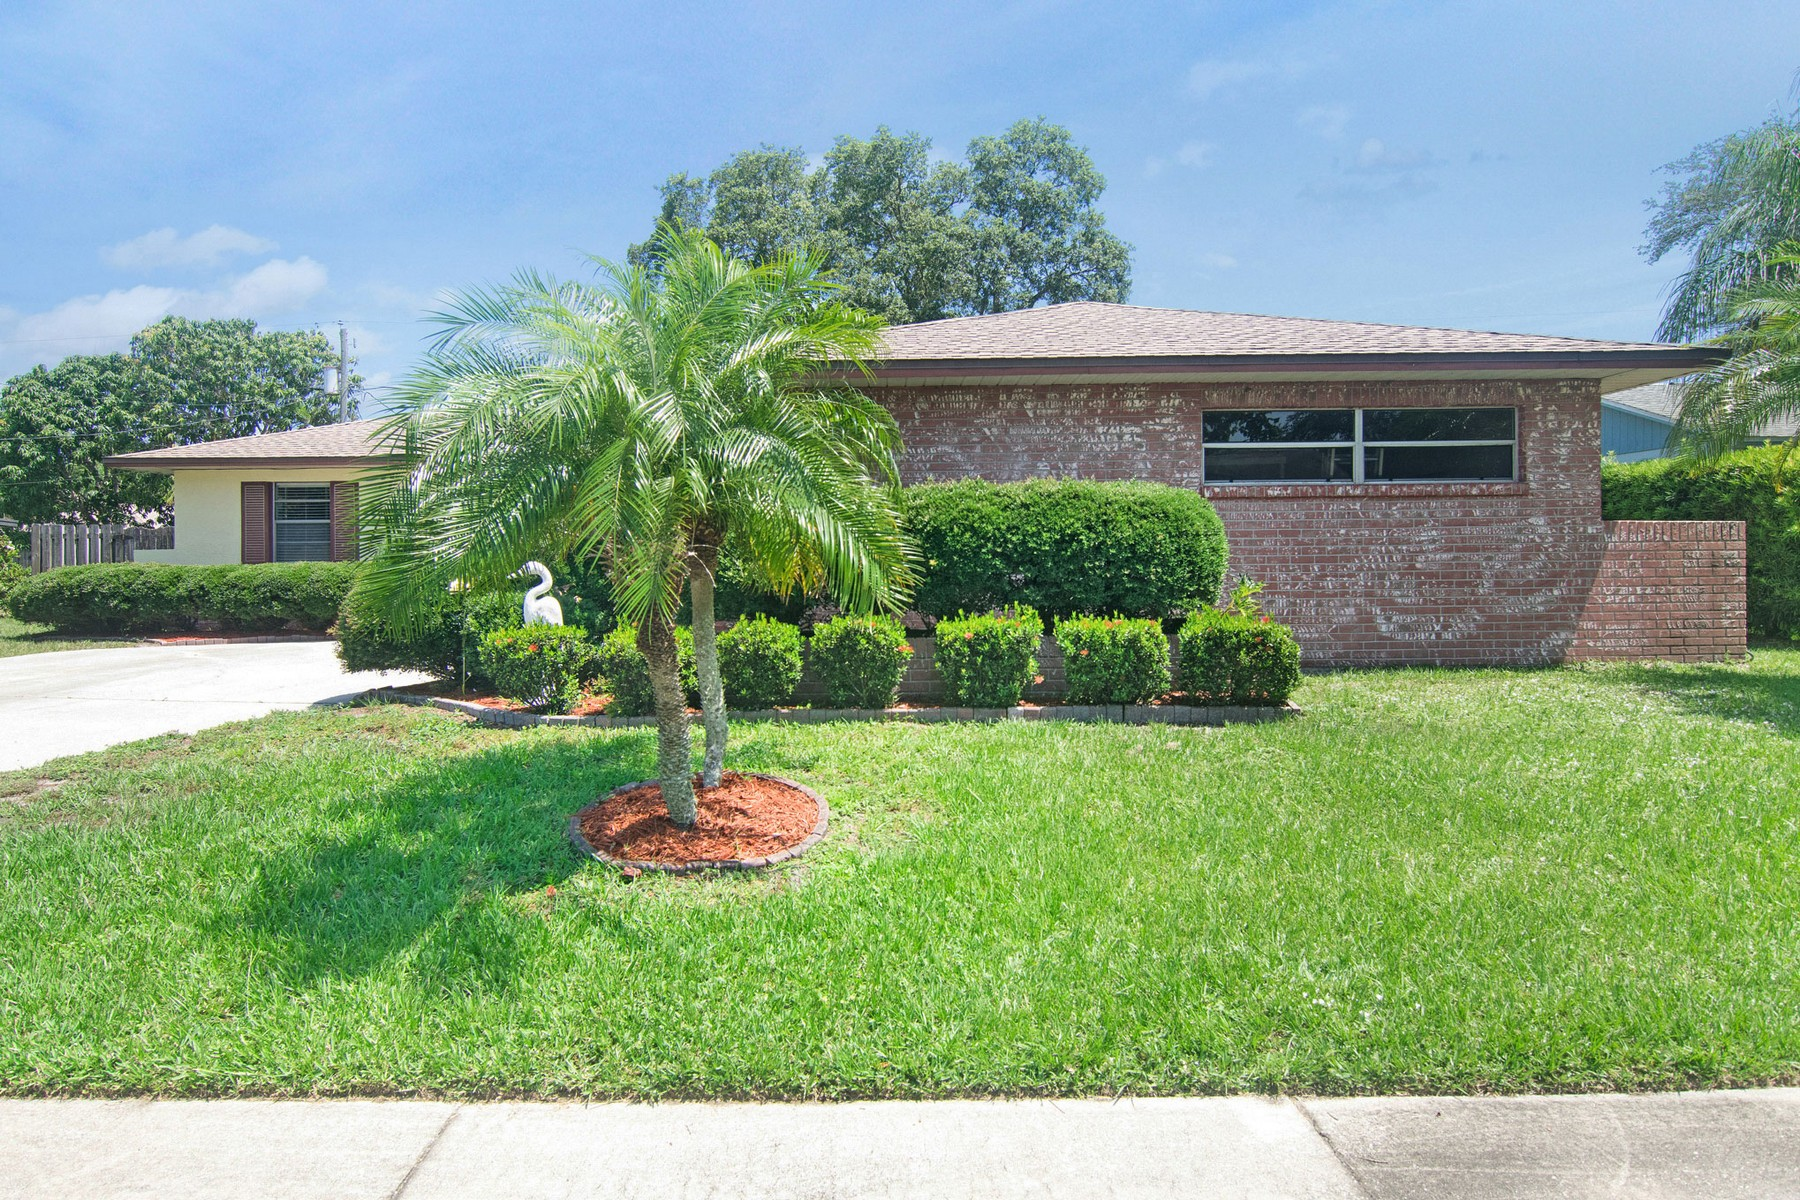 Property for Sale at Greentree Park 1546 Spruce Road Melbourne, Florida 32935 United States